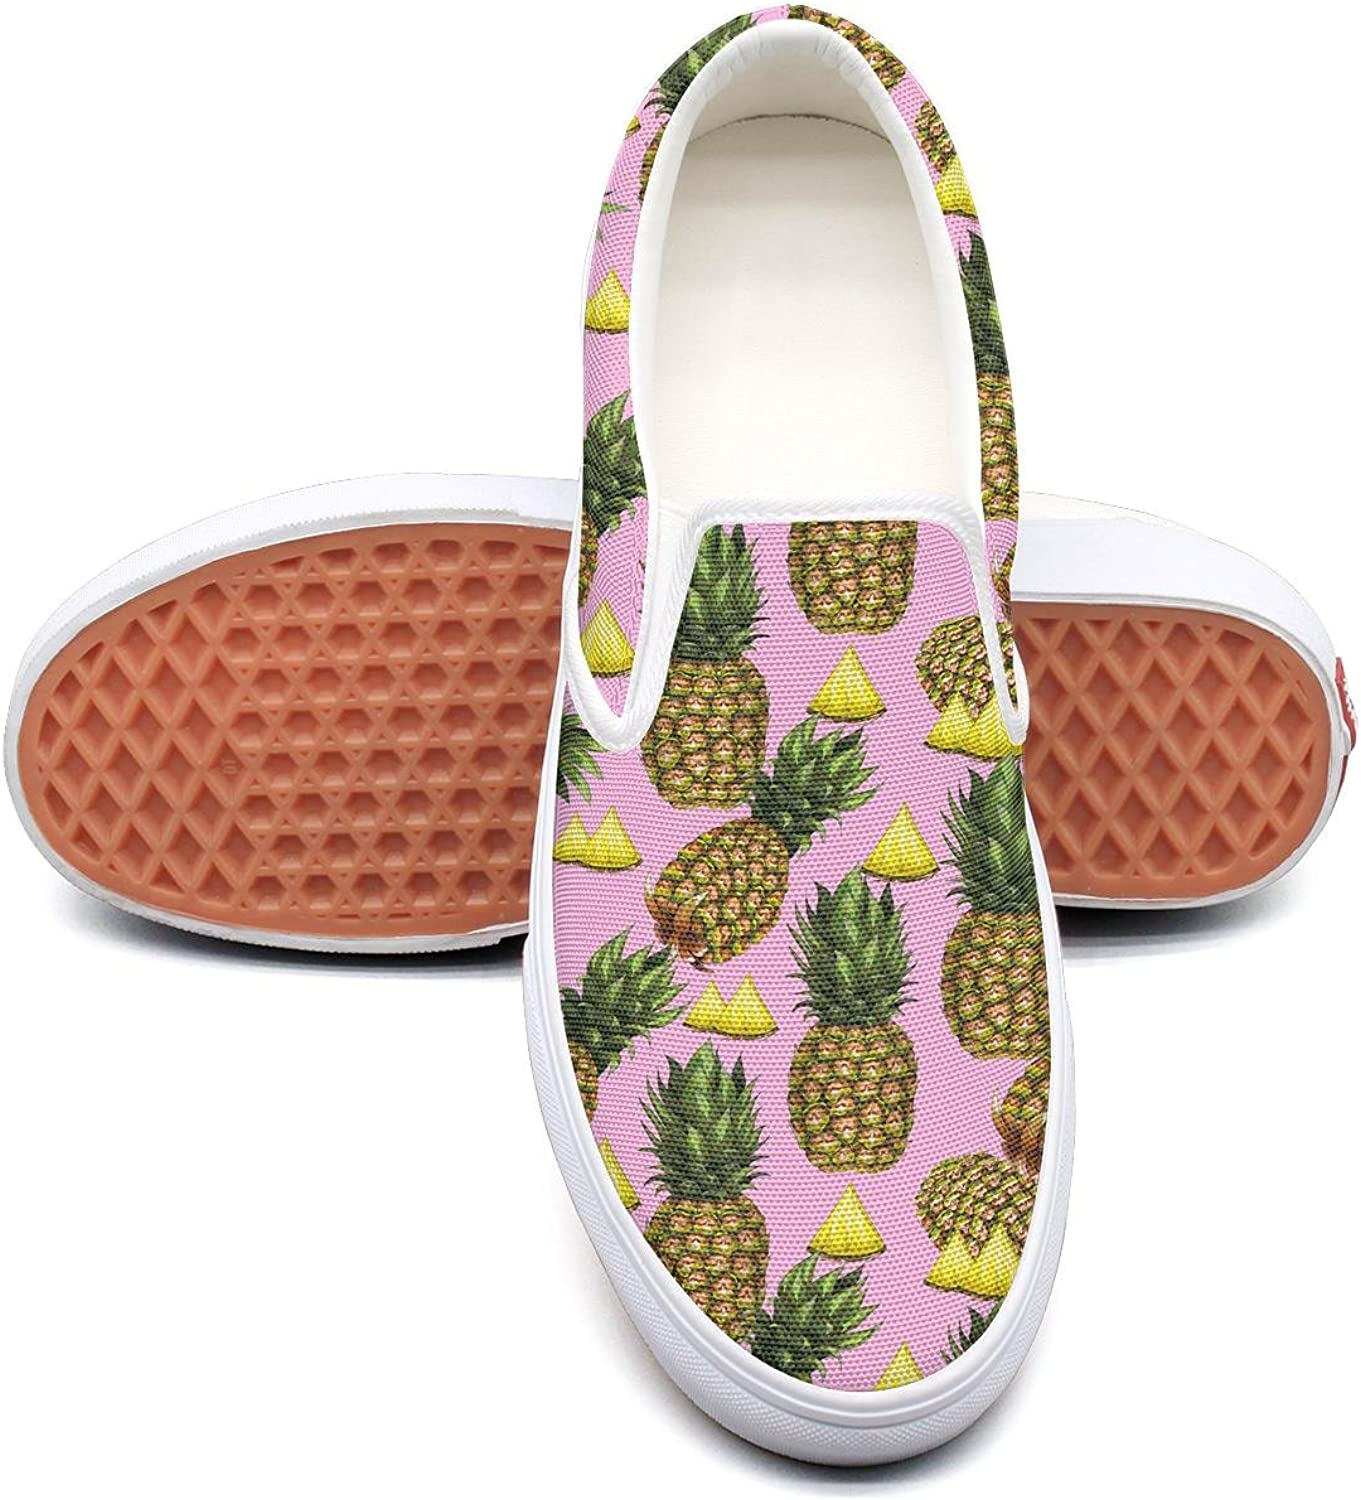 Pineapple and Hearts Slip on Superior Comfort Sneakers Canvas shoes for Women Fashion